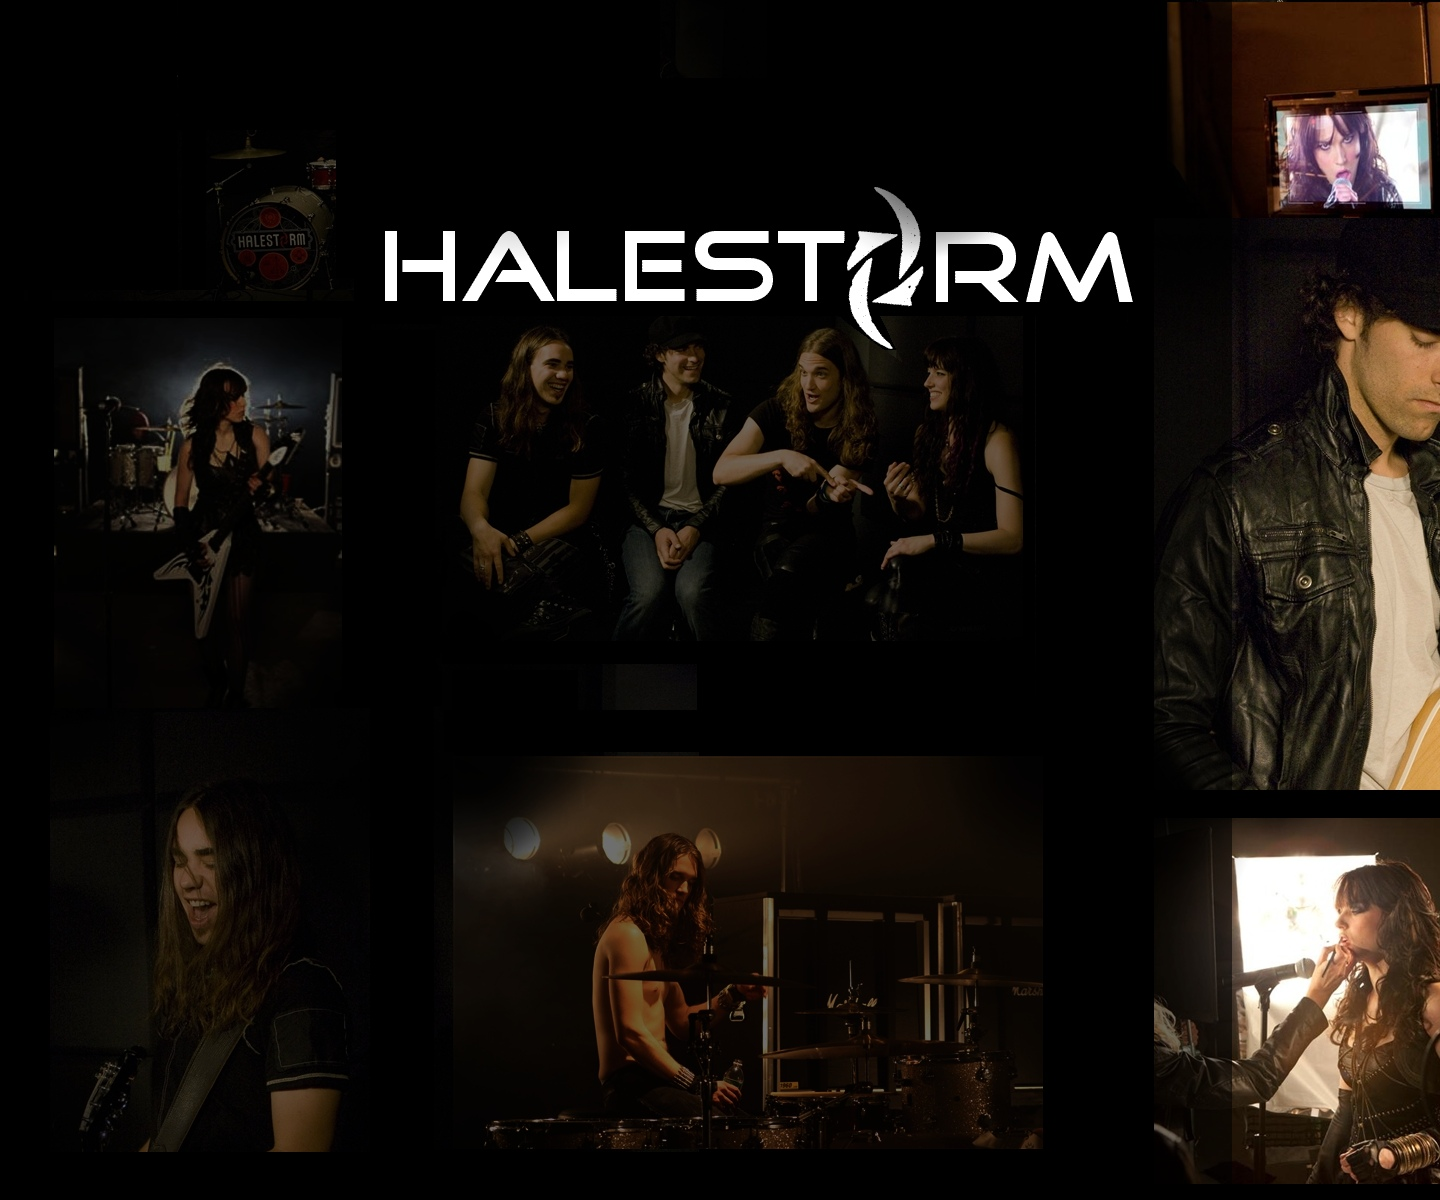 Top Halestorm Computer Wallpapers Desktop Wallpapers 1440x1200